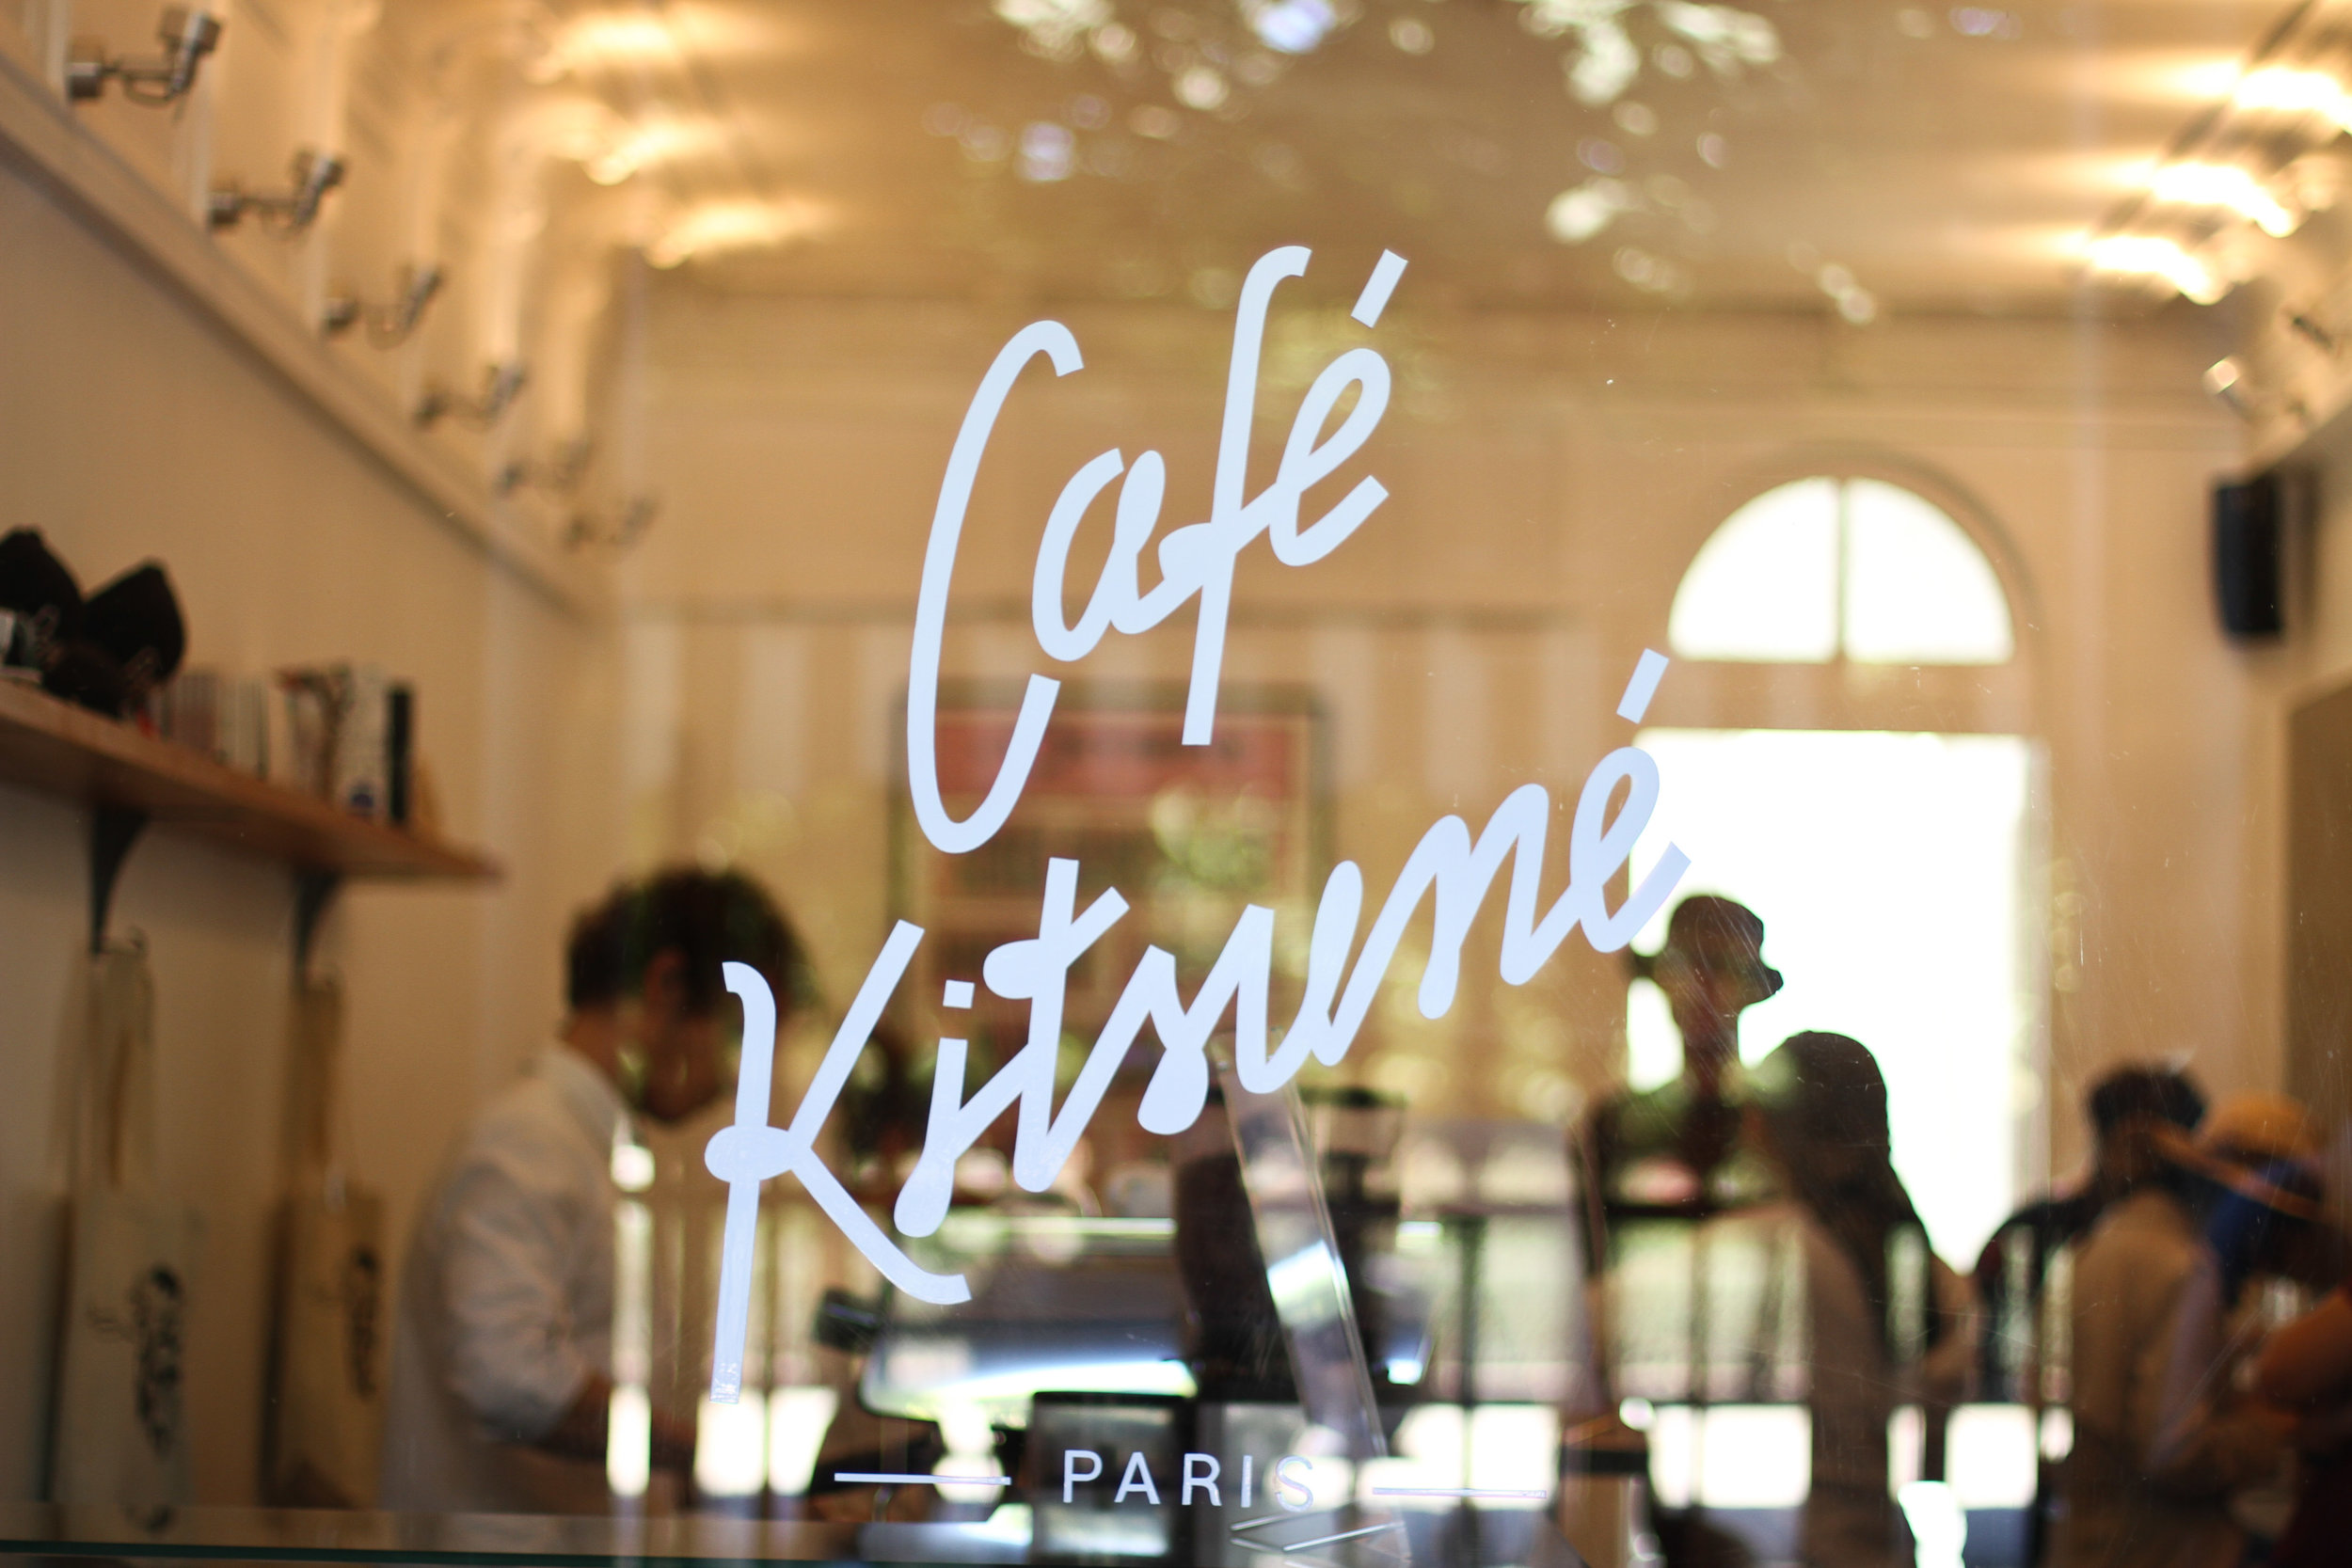 Cafe-Kitsune-for-SIP-9.jpg